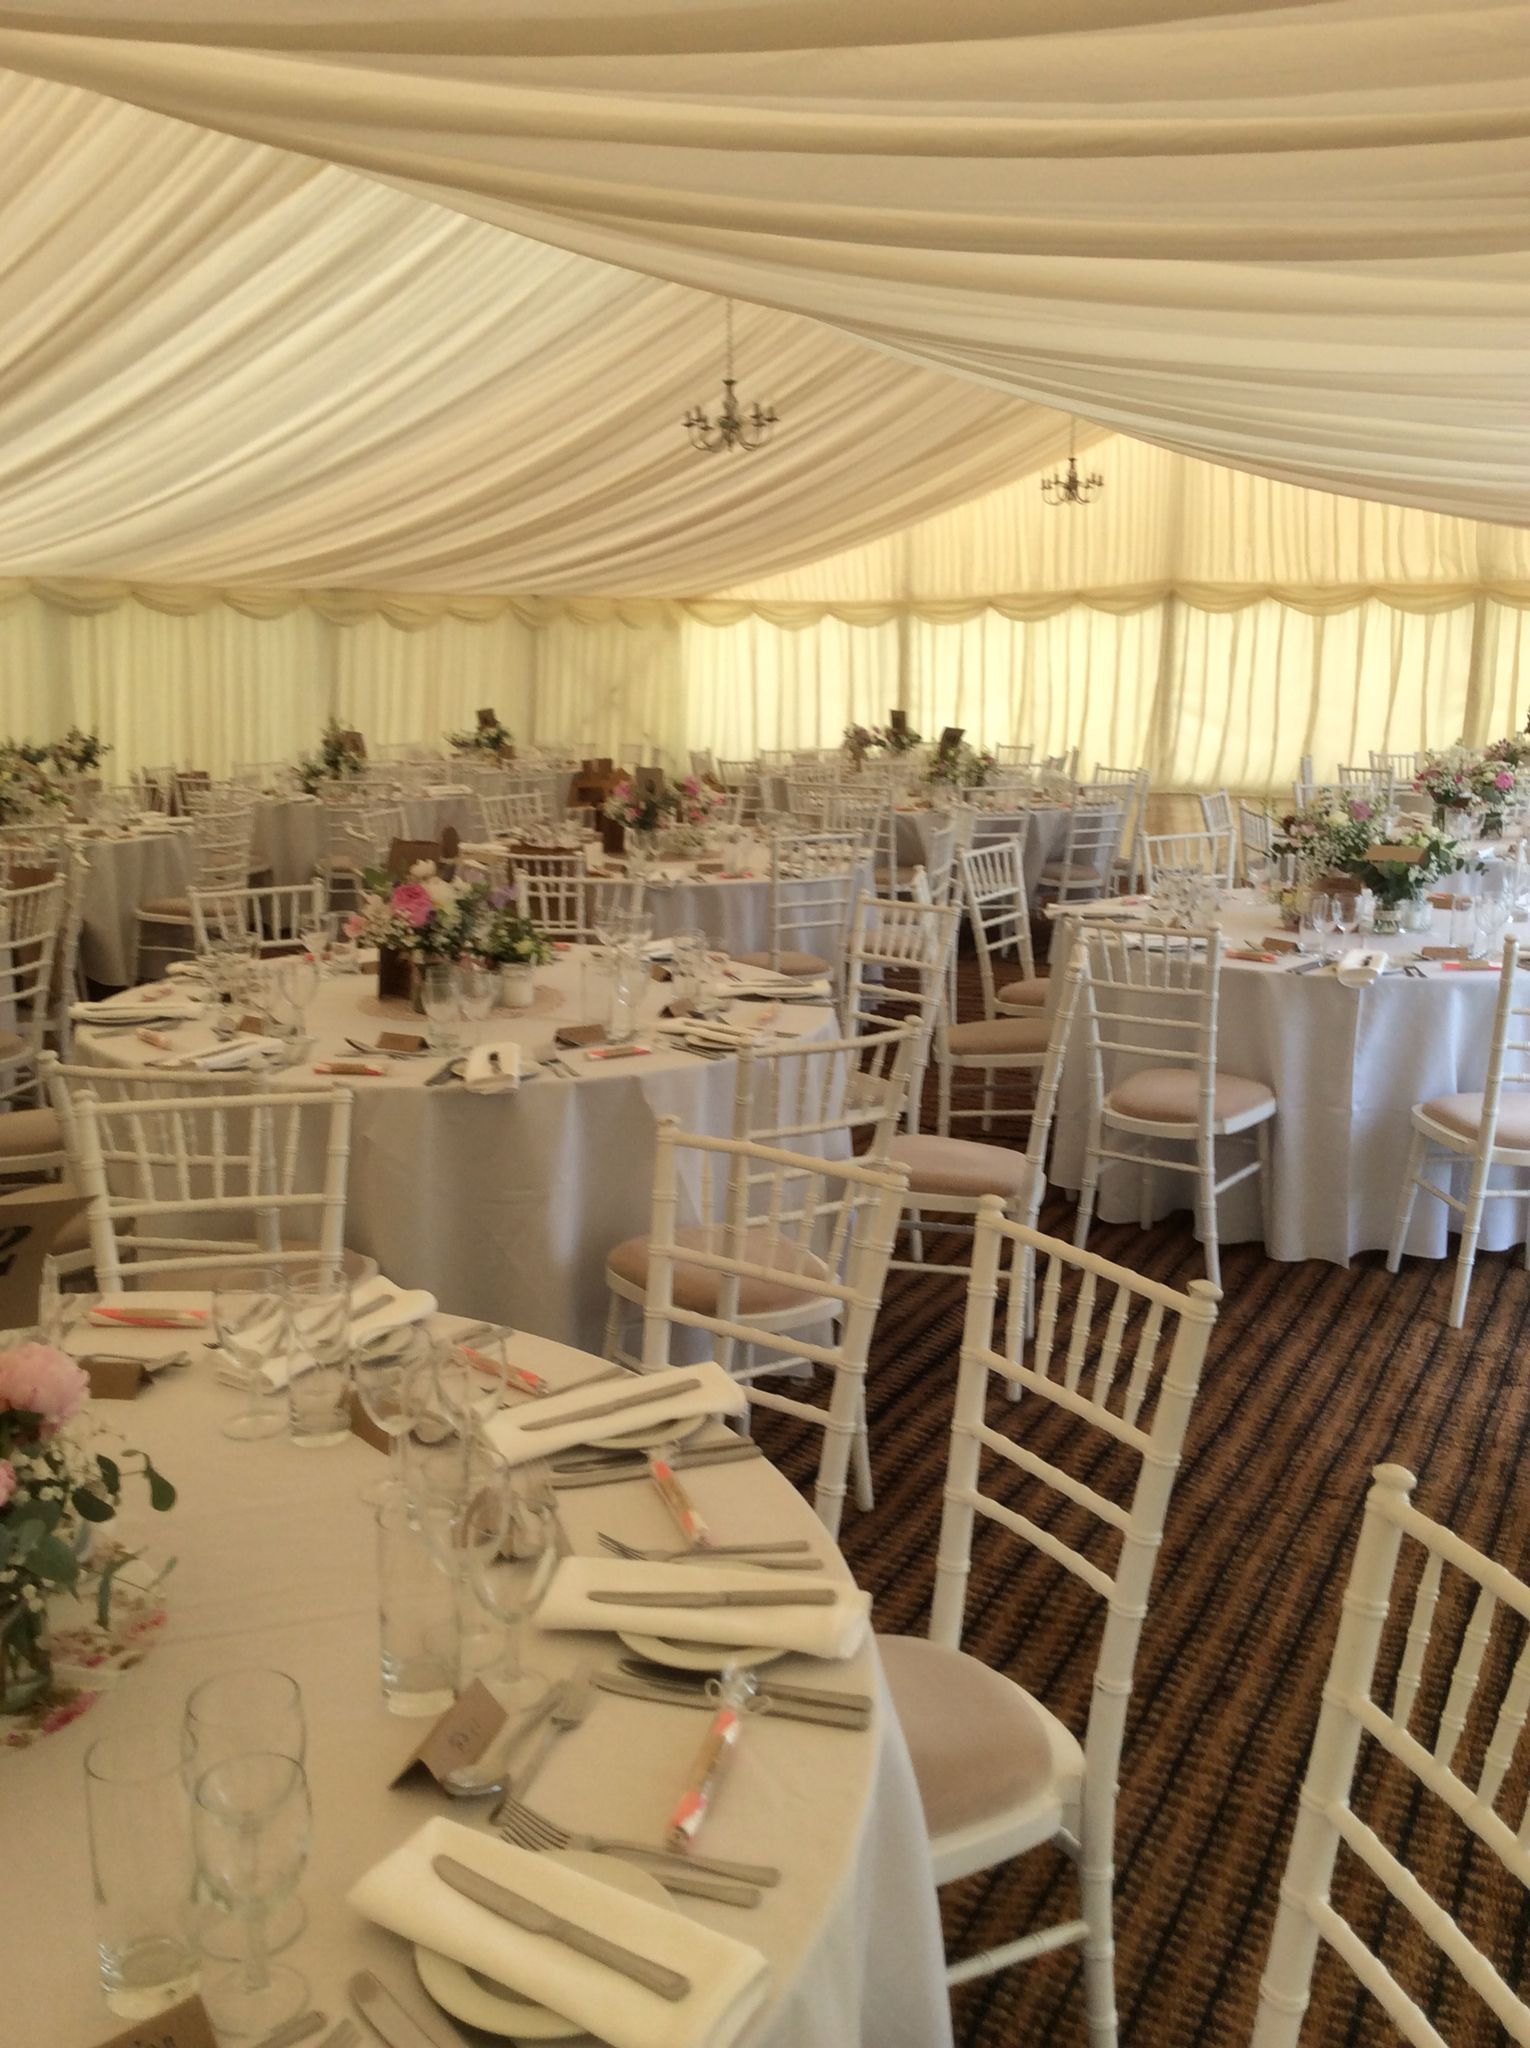 sussex chiavari chair hire from pollen4hire - firle place marquee